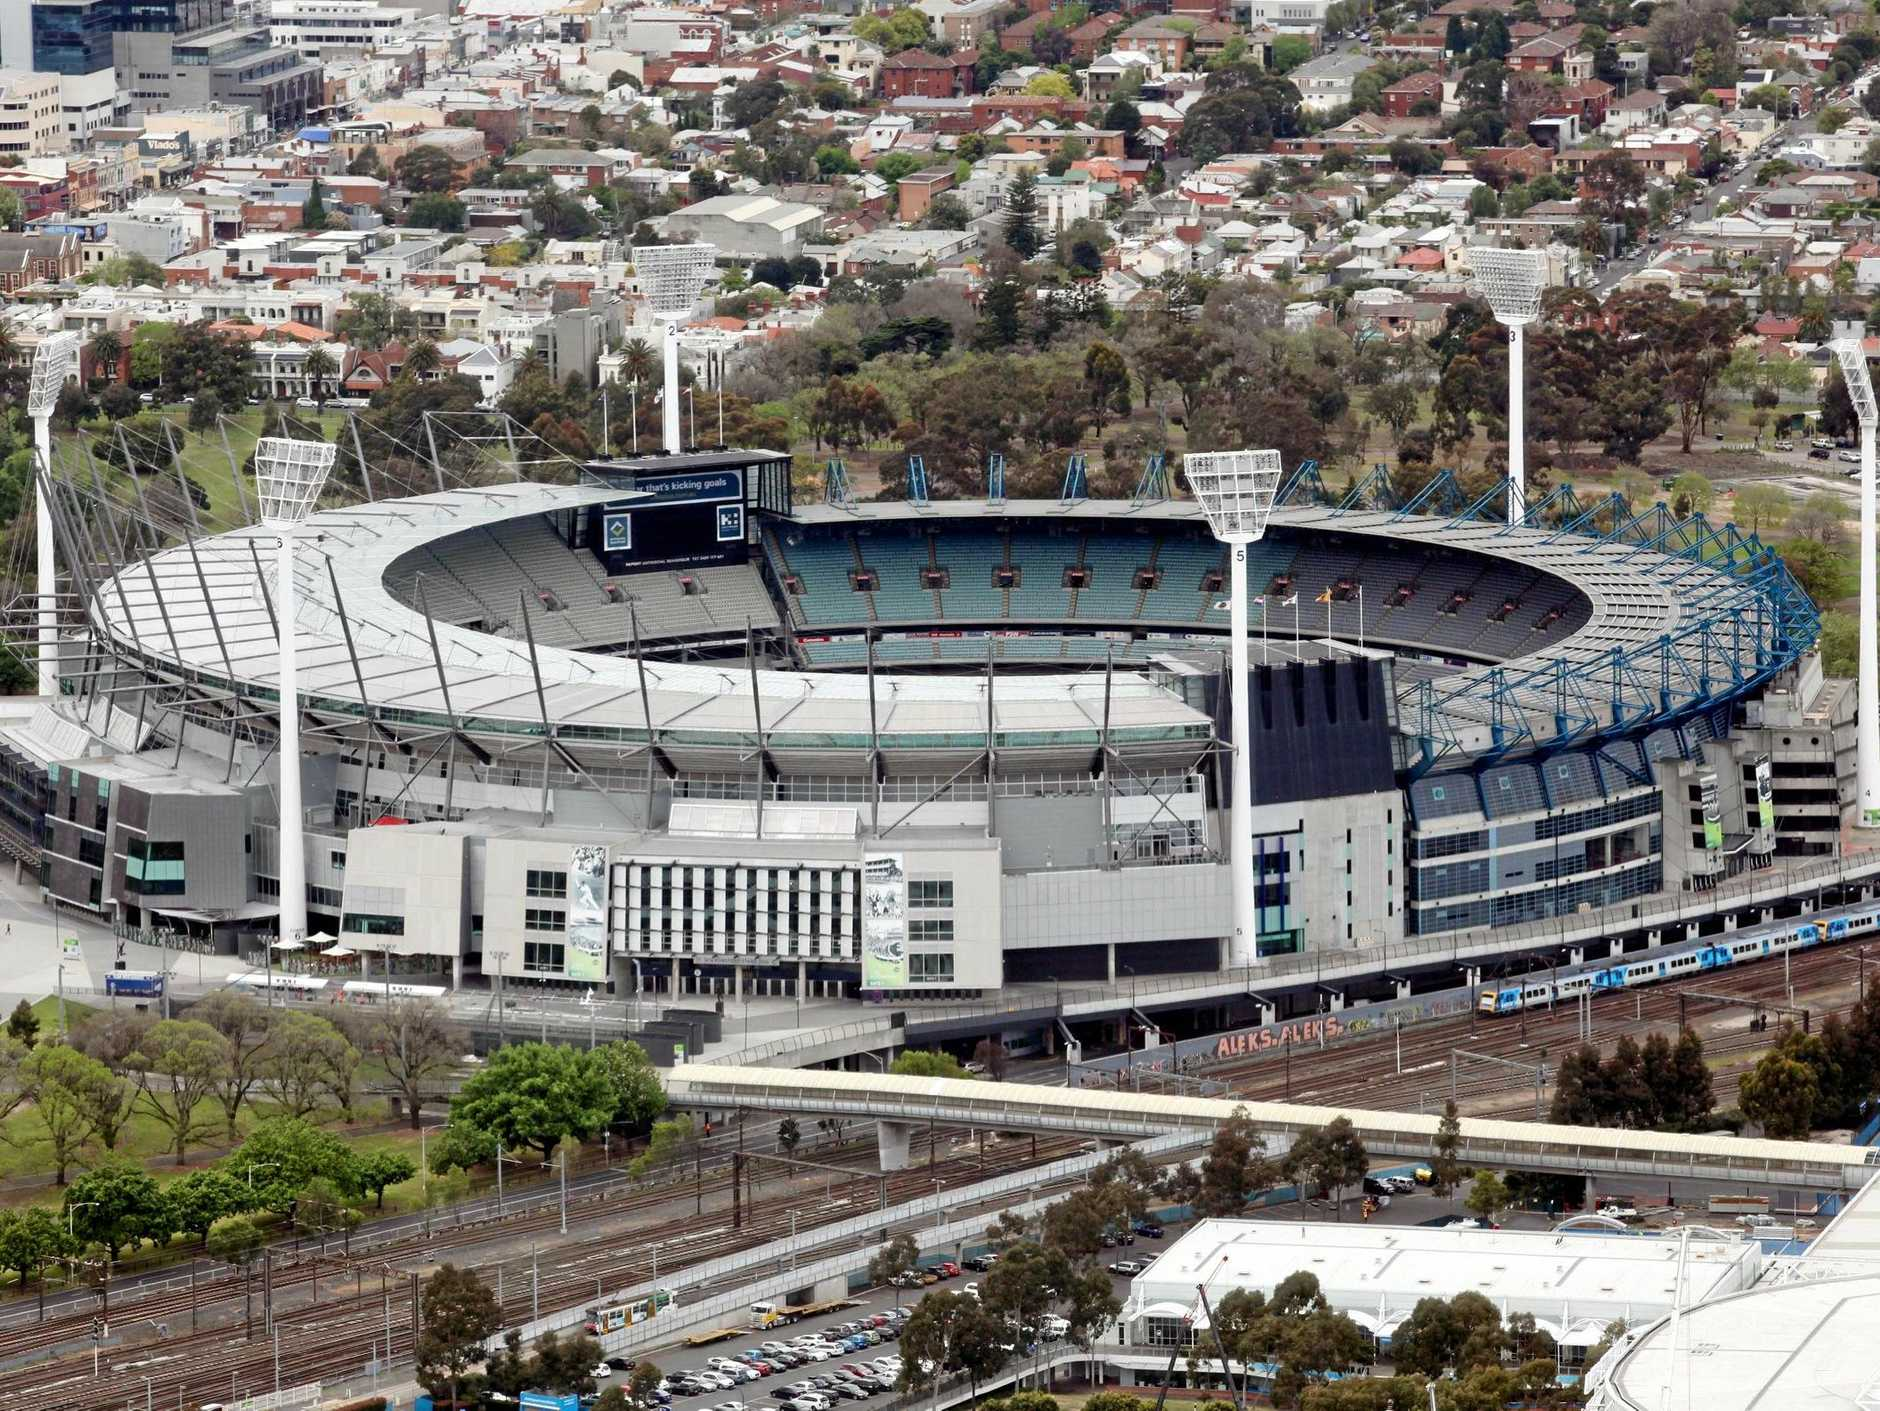 The Melbourne Cricket Ground or MCG as it's known is just one of Melbourne's landmarks, but has it lost its aura?